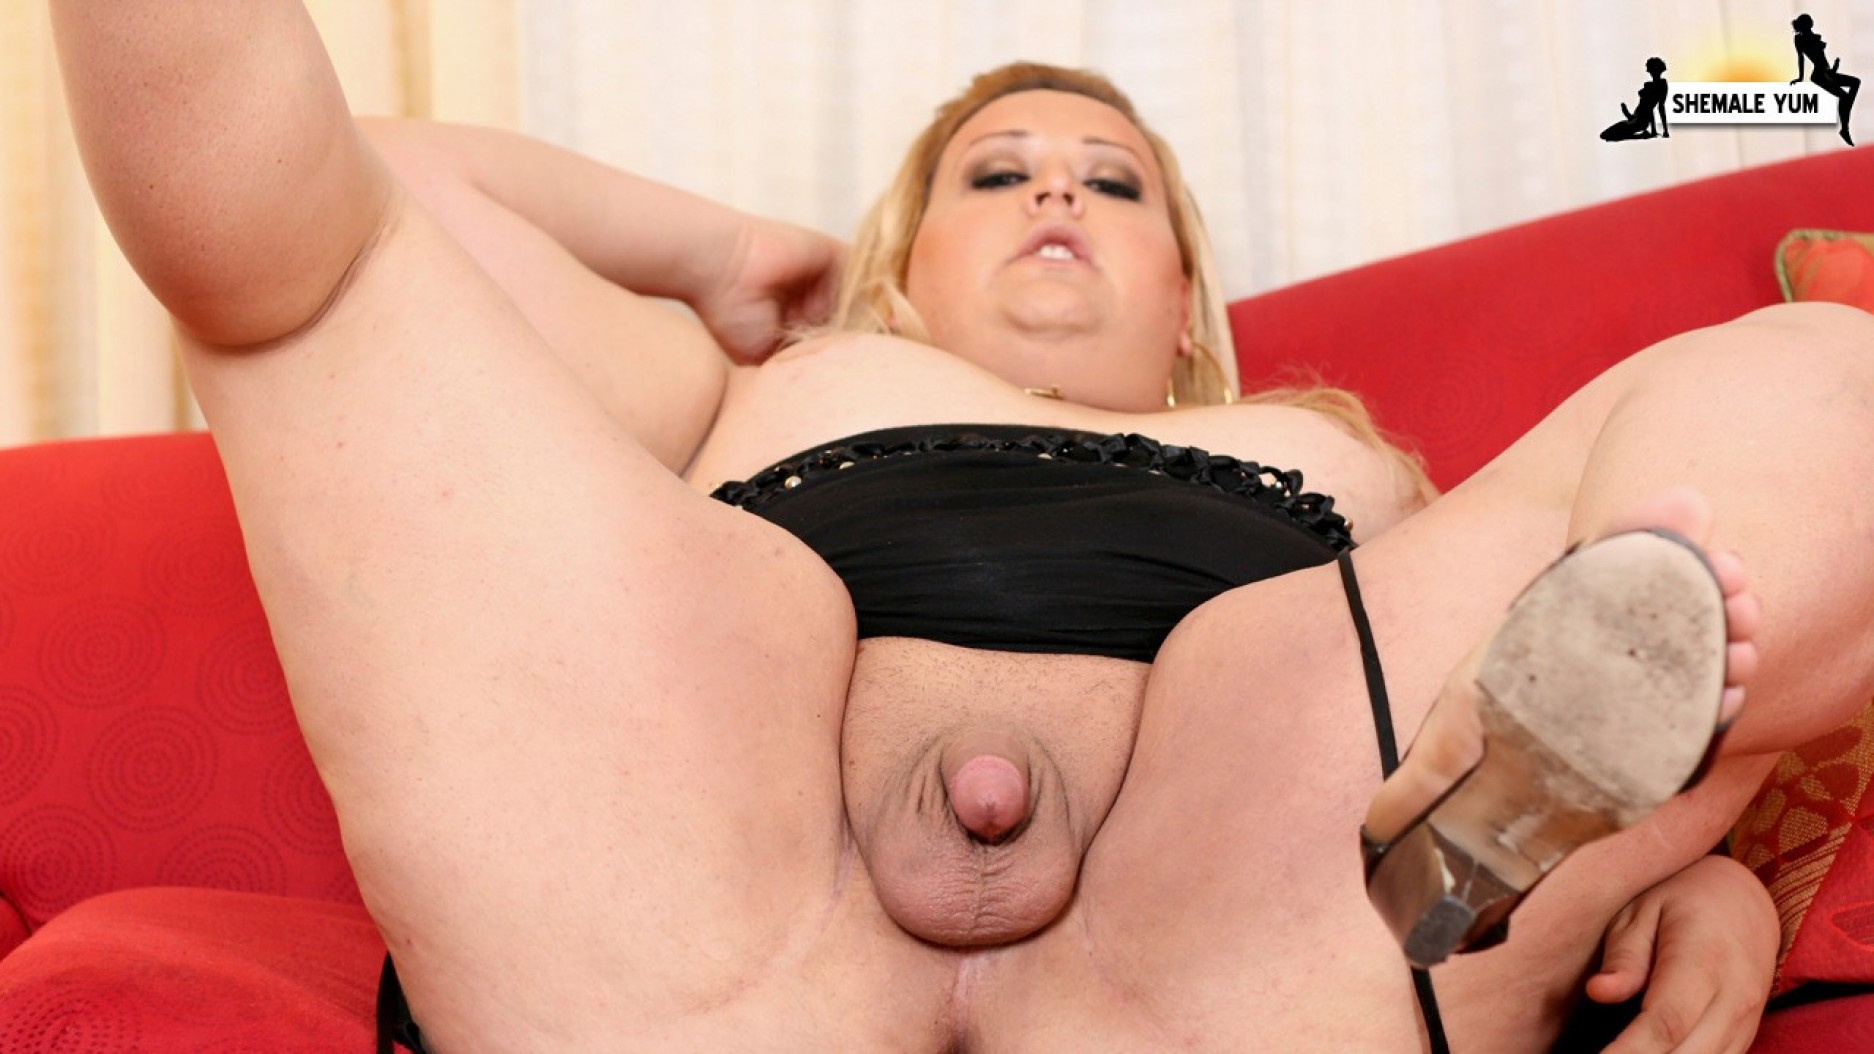 The big shemaile fuck woman pictures erotic clips